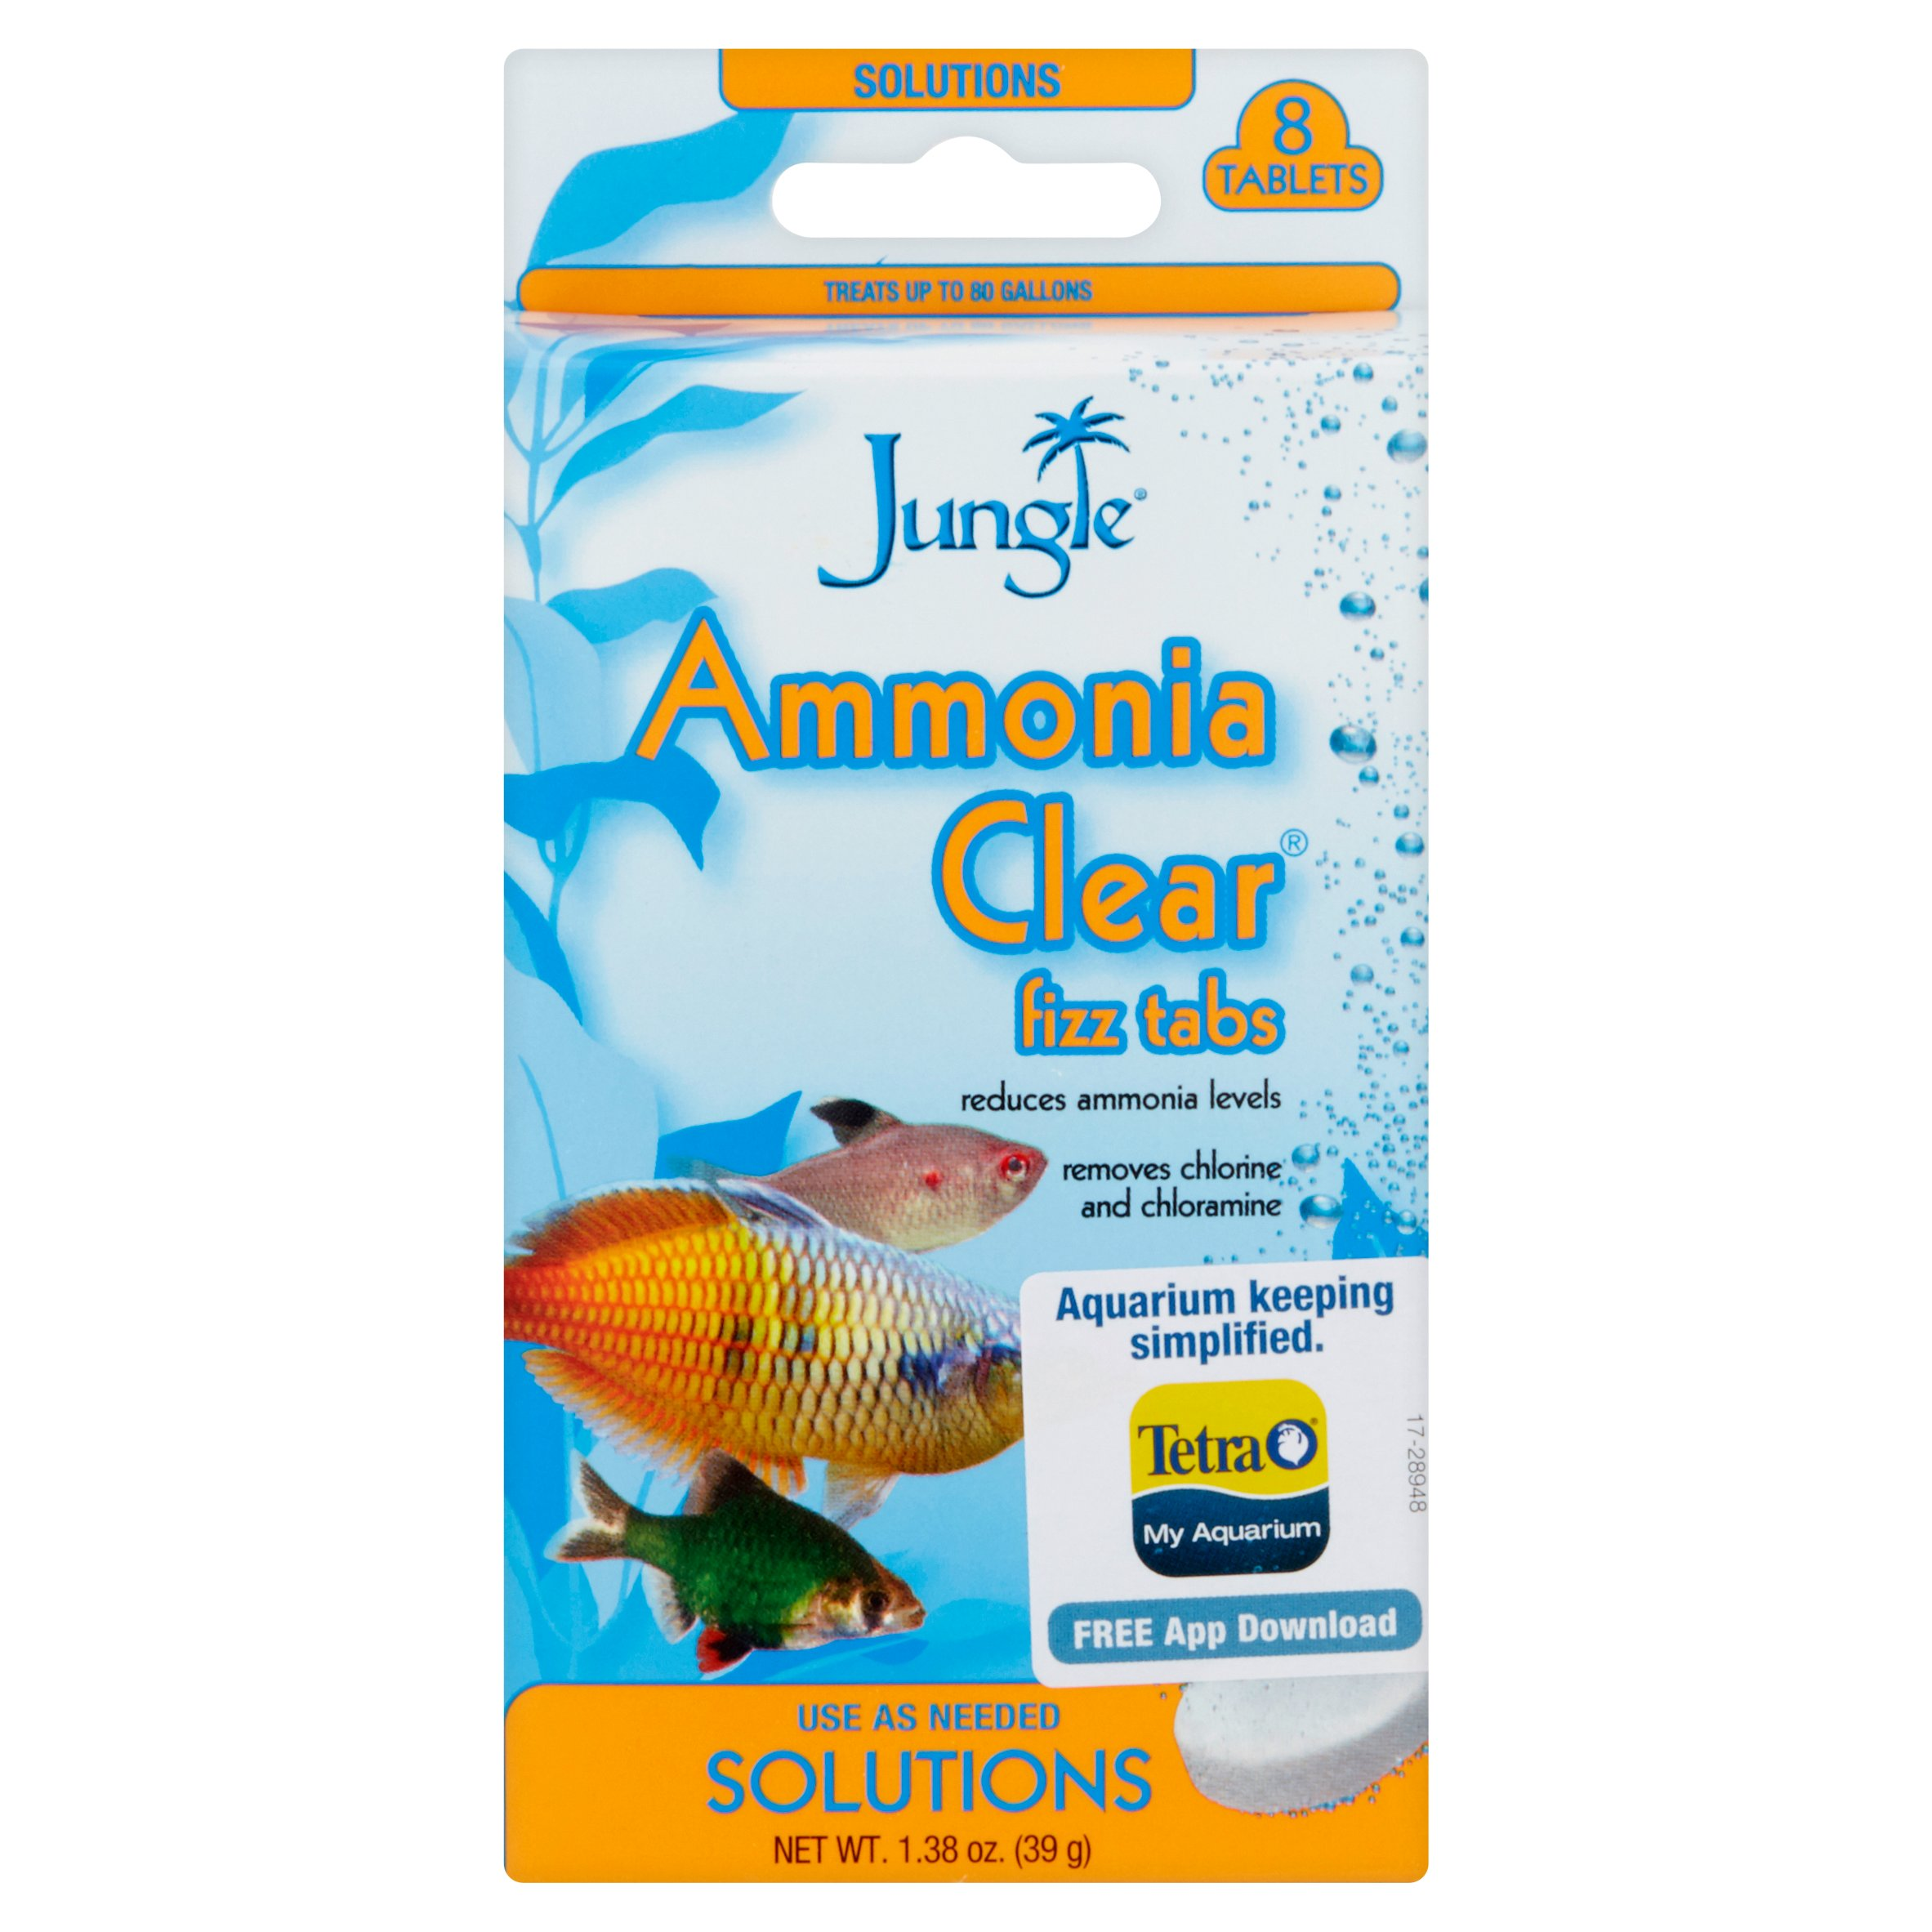 Jungle Ammonia Clear Fizz Tabs, 8-Count, 1.38-Ounce